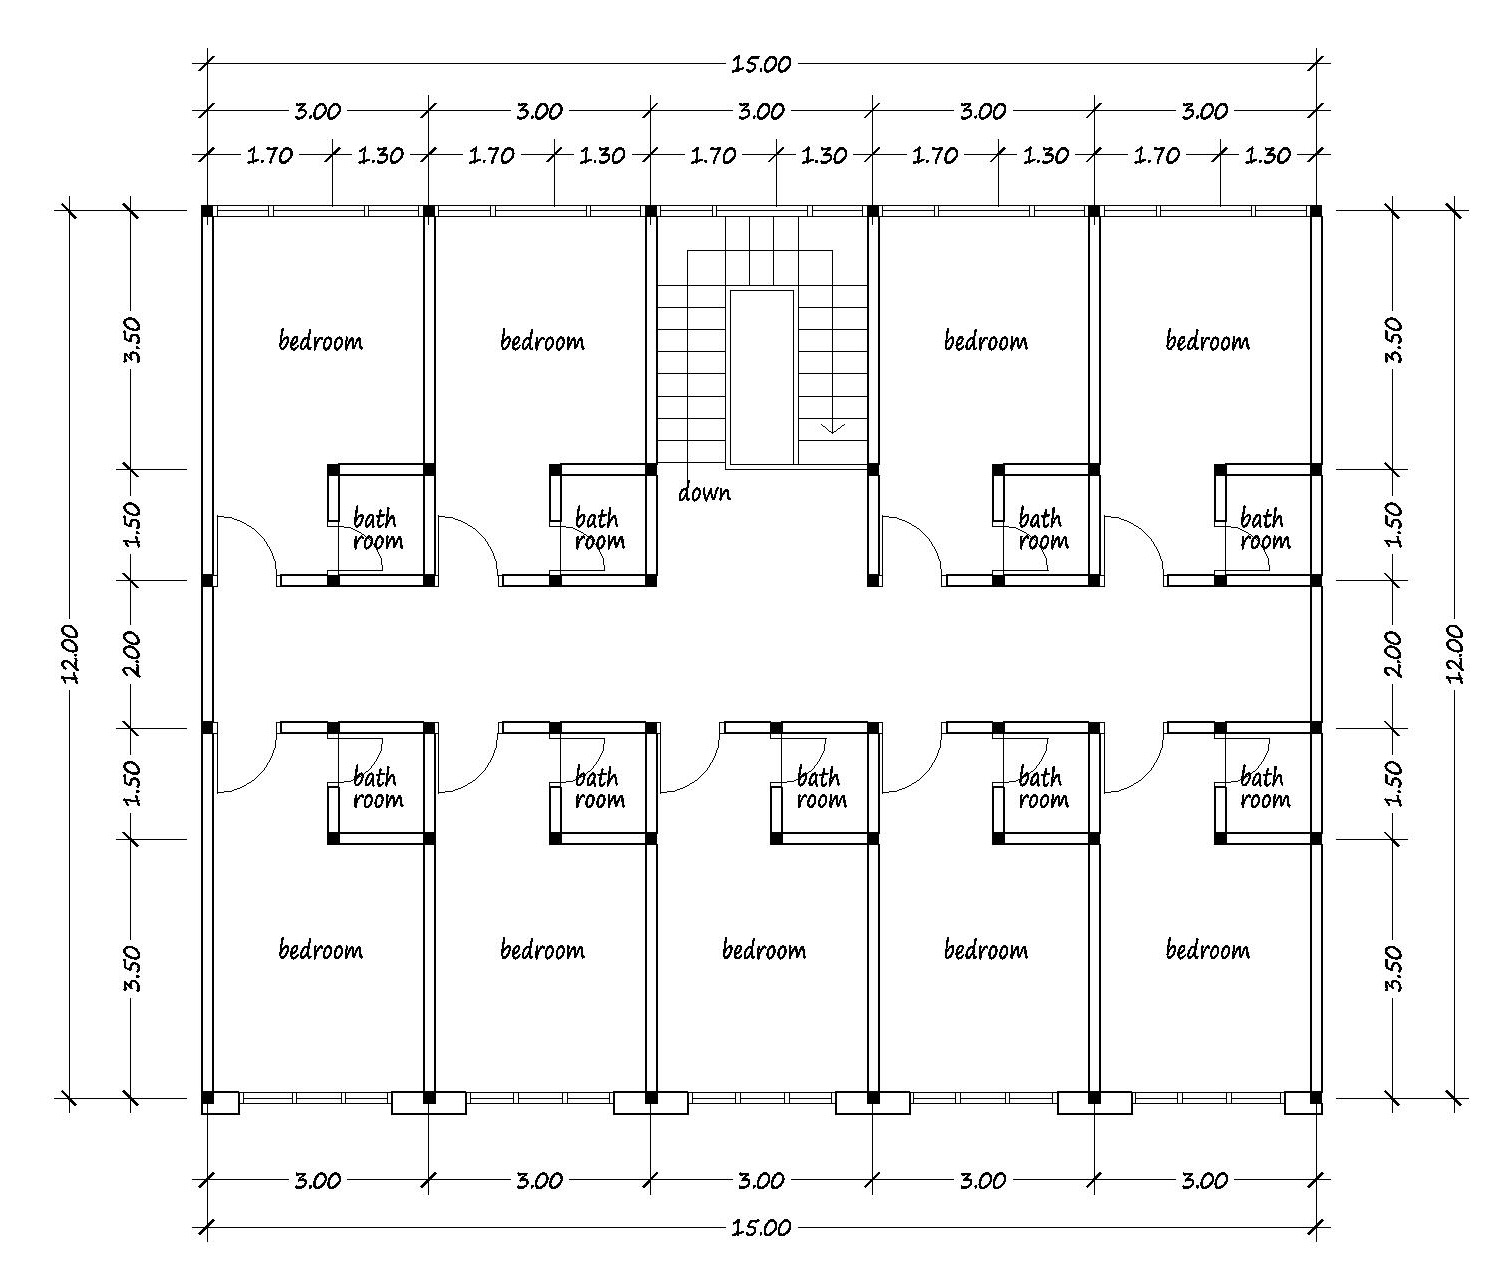 House plans for you plans image design and about house for Housr plans